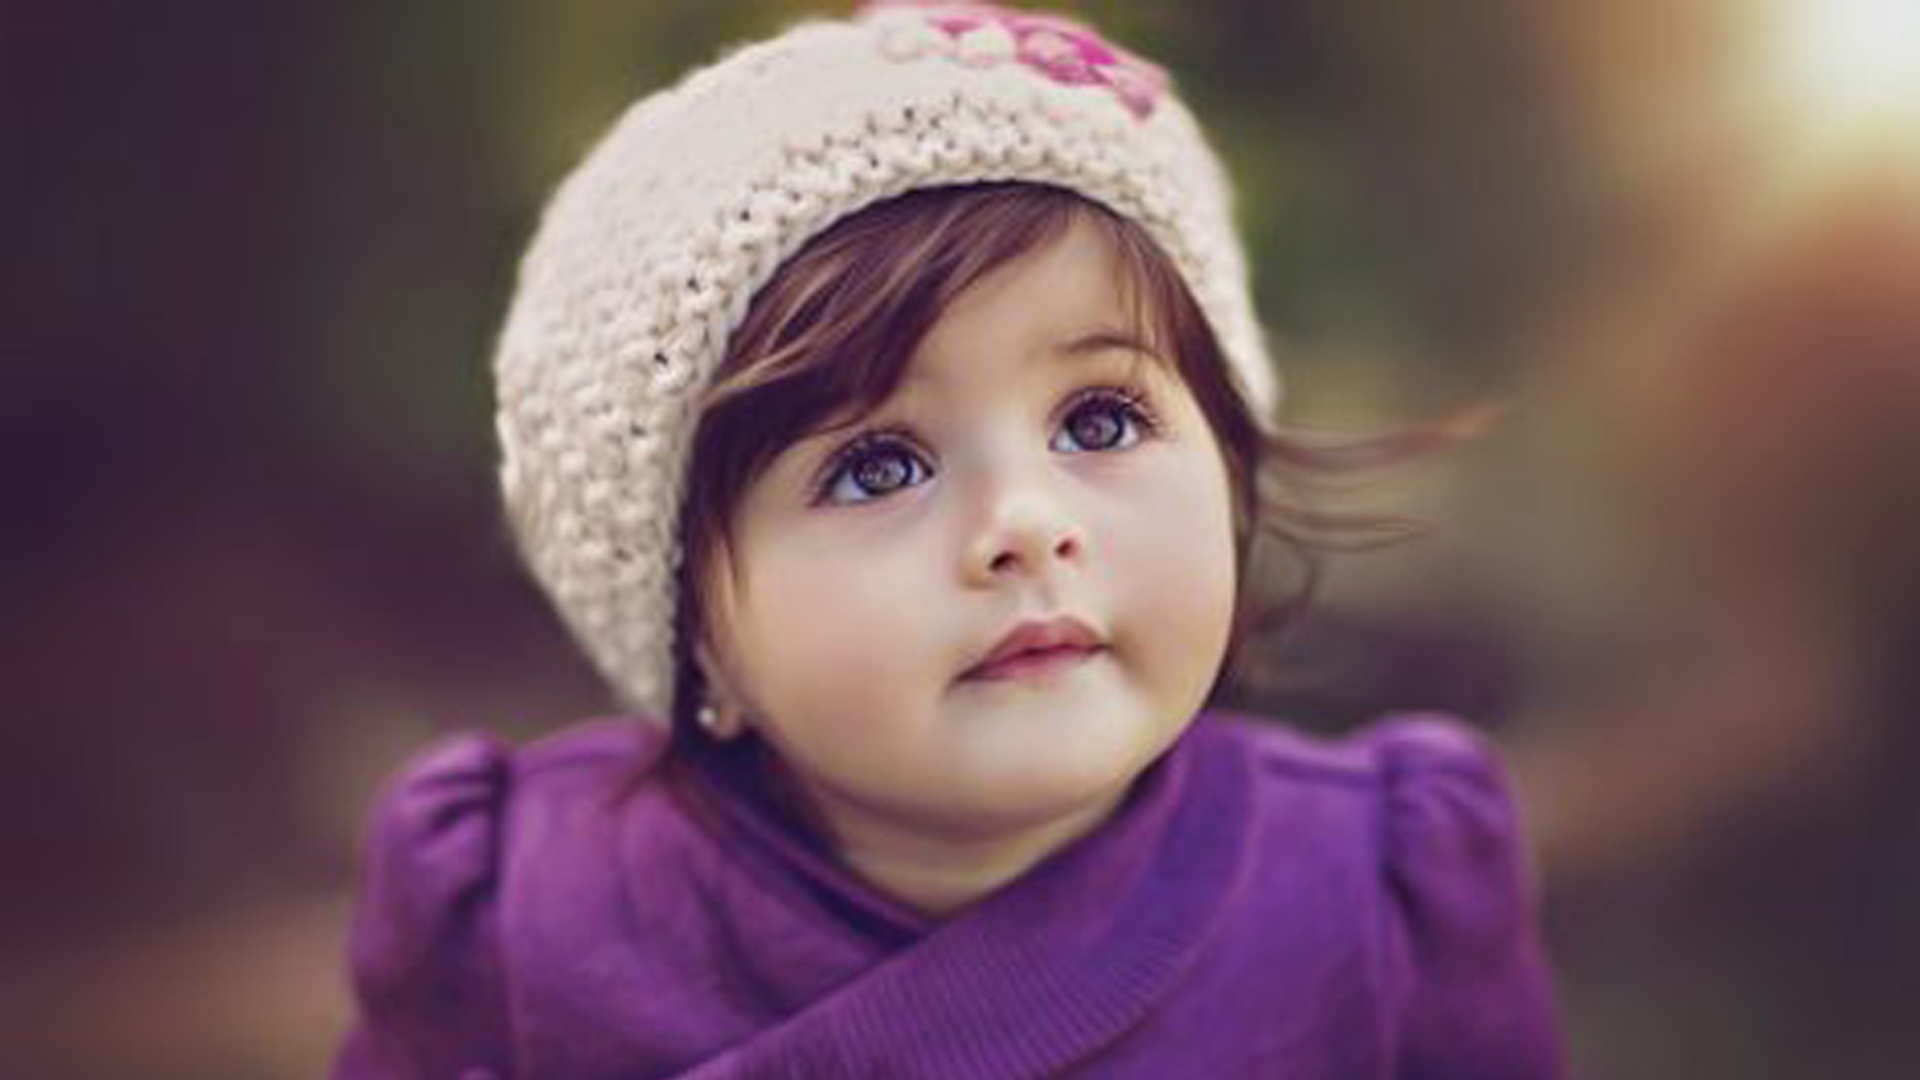 Baby Pics HD Images 2018